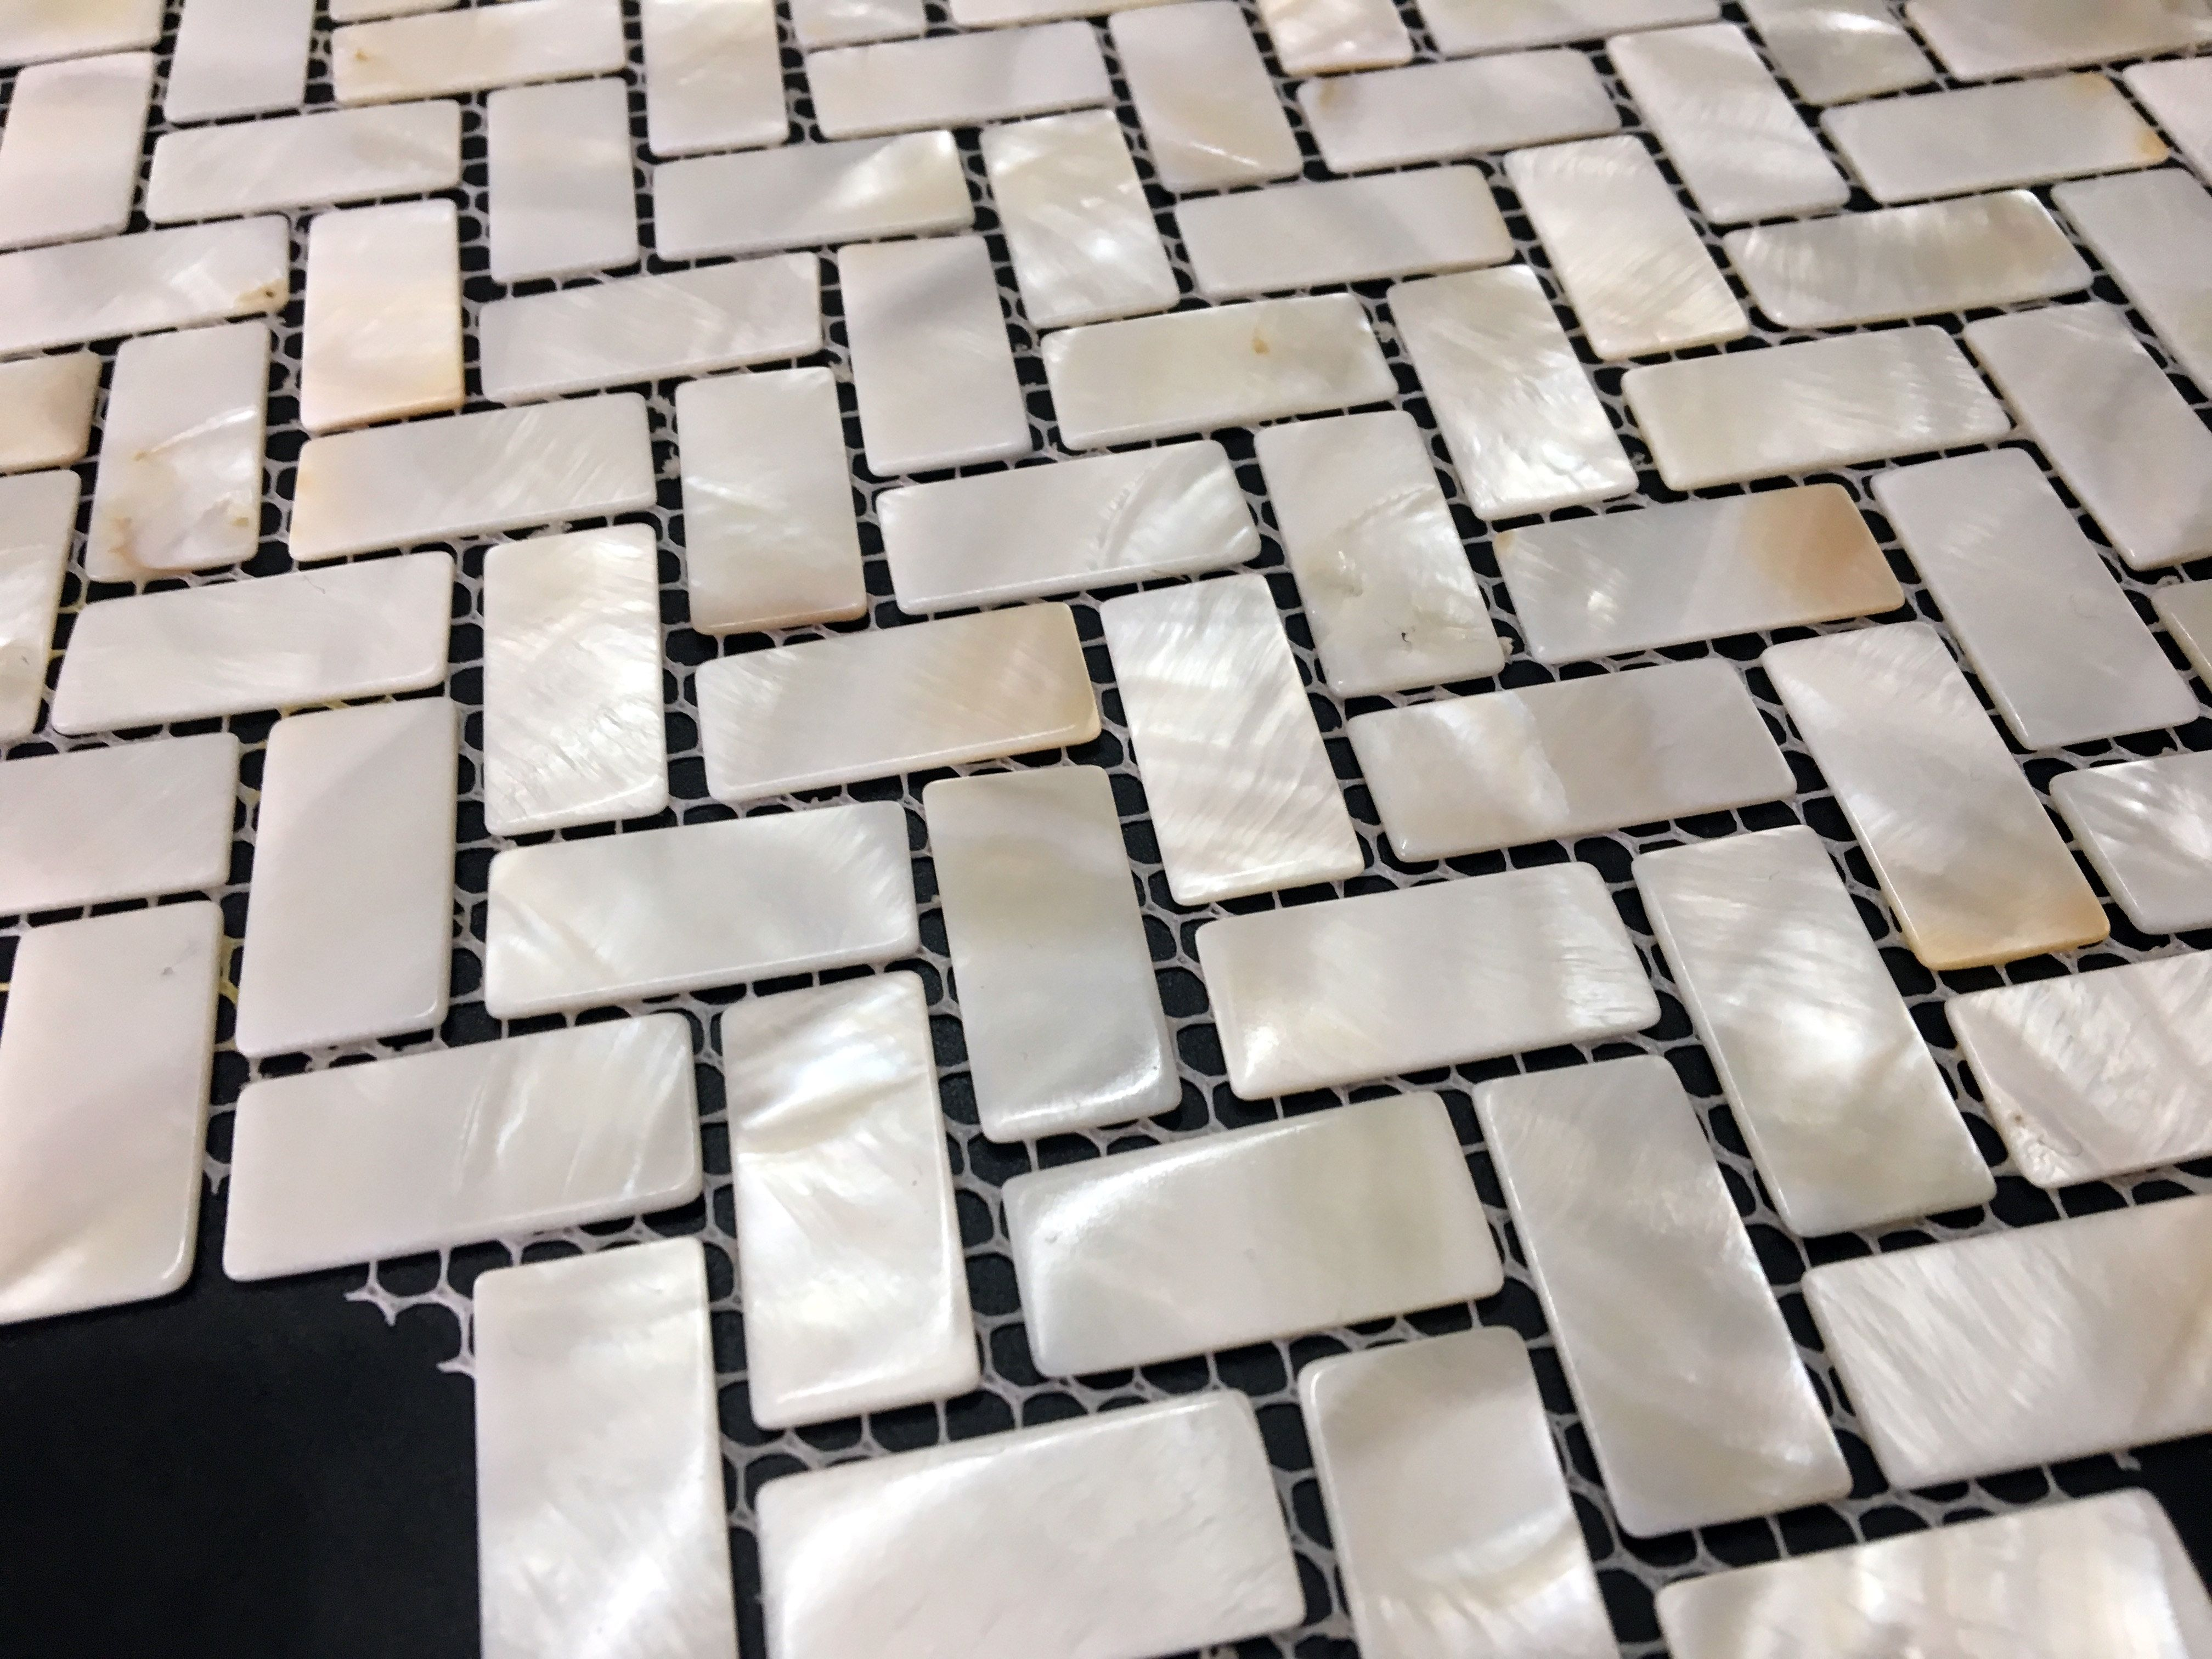 Visual eye candy how to tile a herringbone floor part i - White Herringbone Mother Of Pearl Tile With Joint